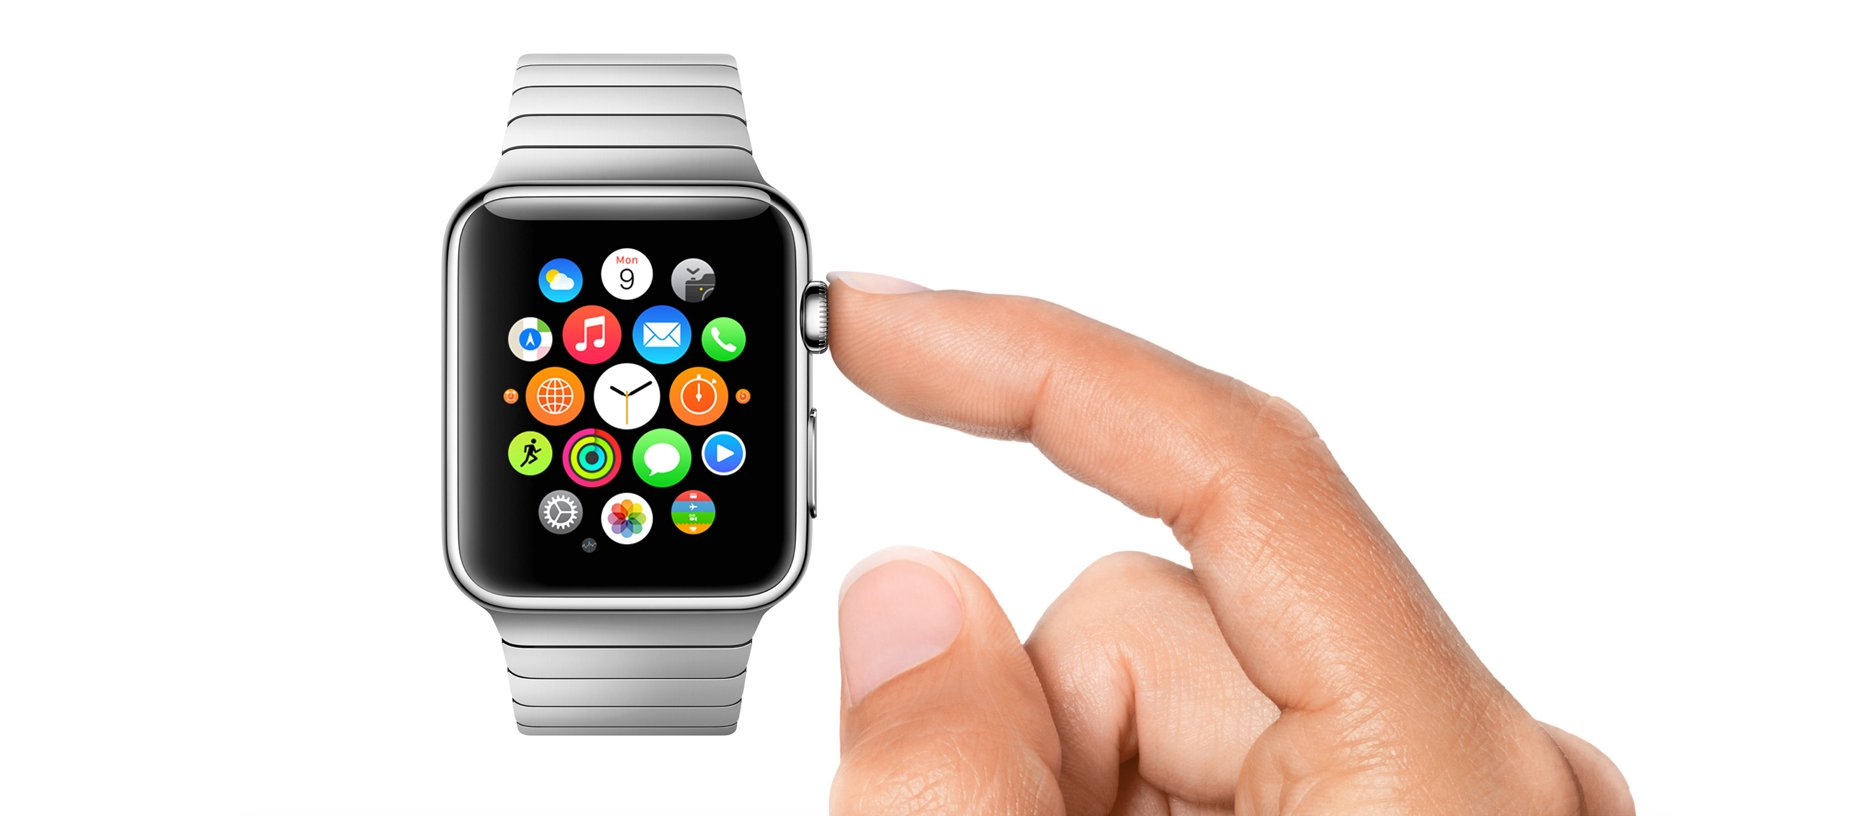 Updates to Apple Watch OS and Apple TV are in the pipeline